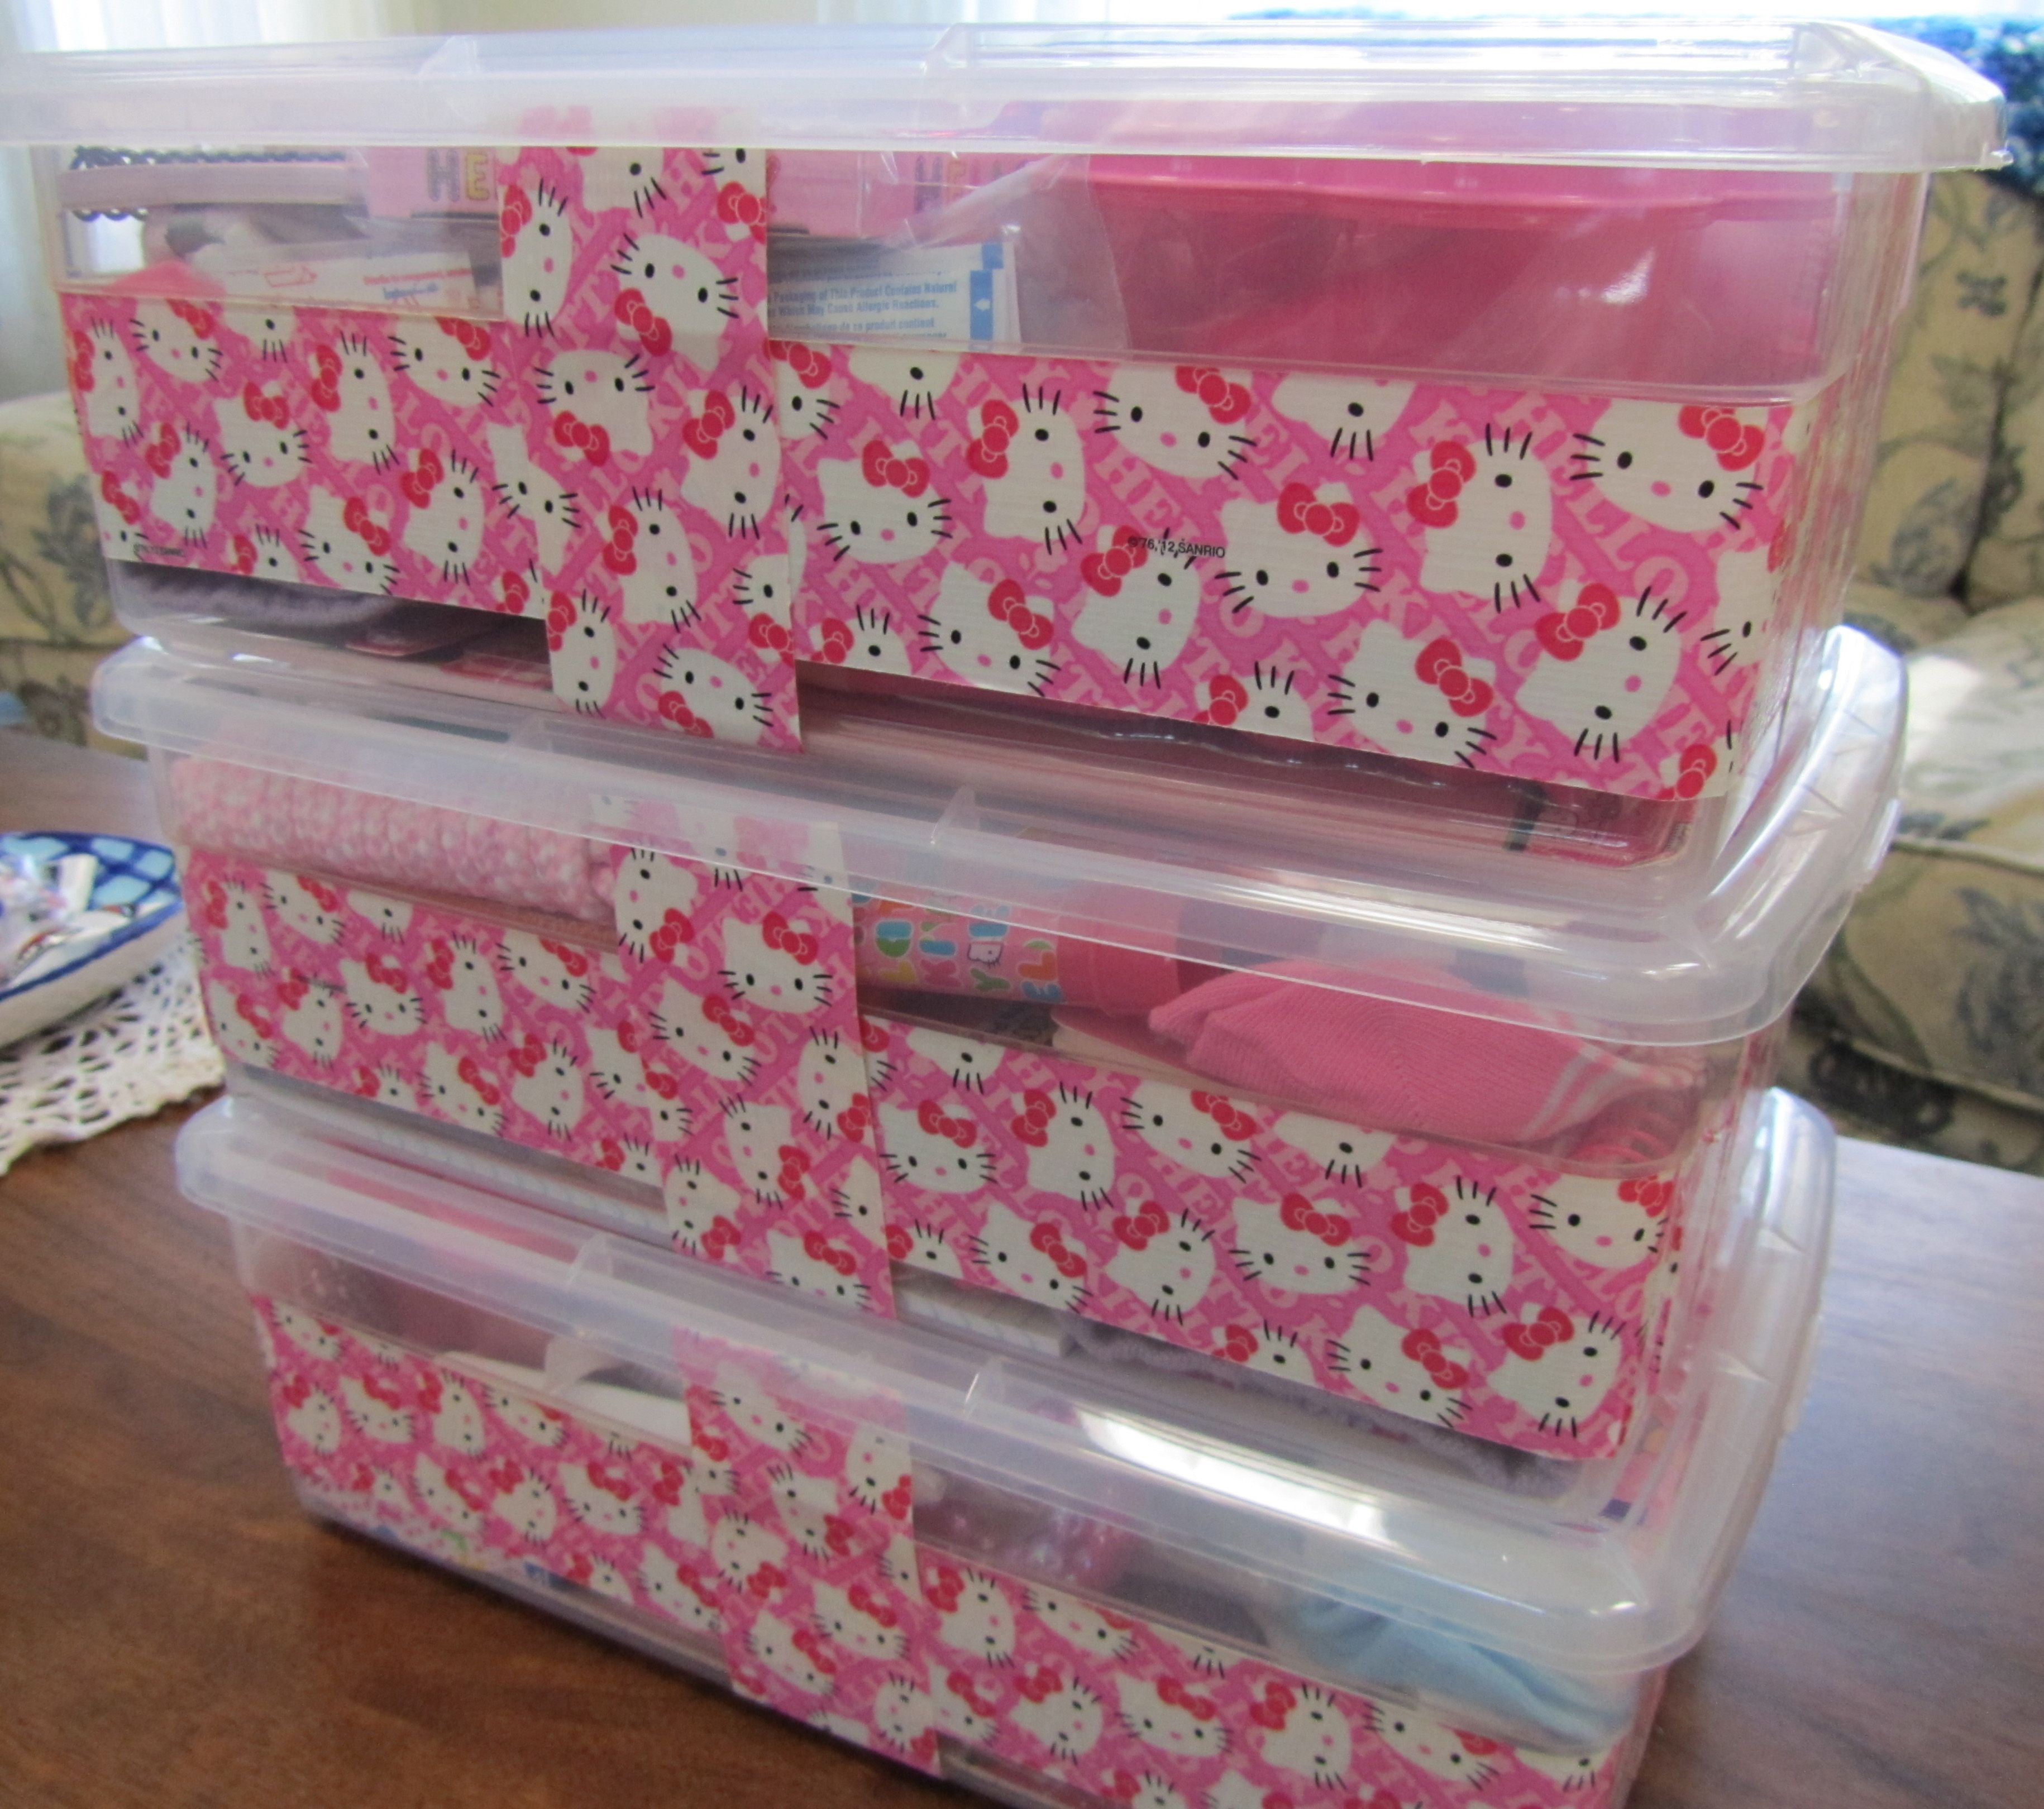 Shoe Box Decorating Ideas Hello Kitty Duck Tape Can Decorate Plastic Or Cardboard Boxes For